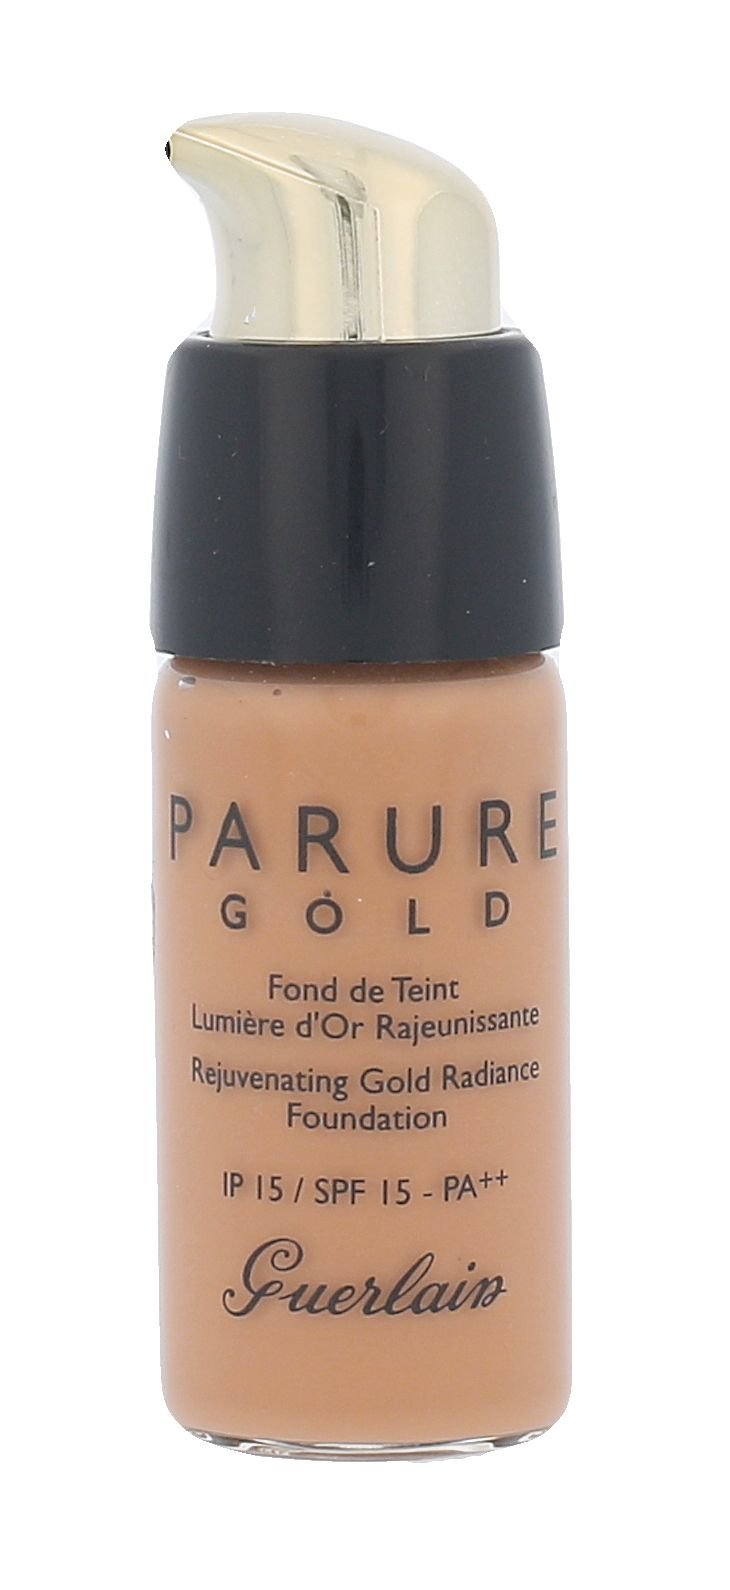 Guerlain Parure Gold Cosmetic 15ml 05 Beige Intense